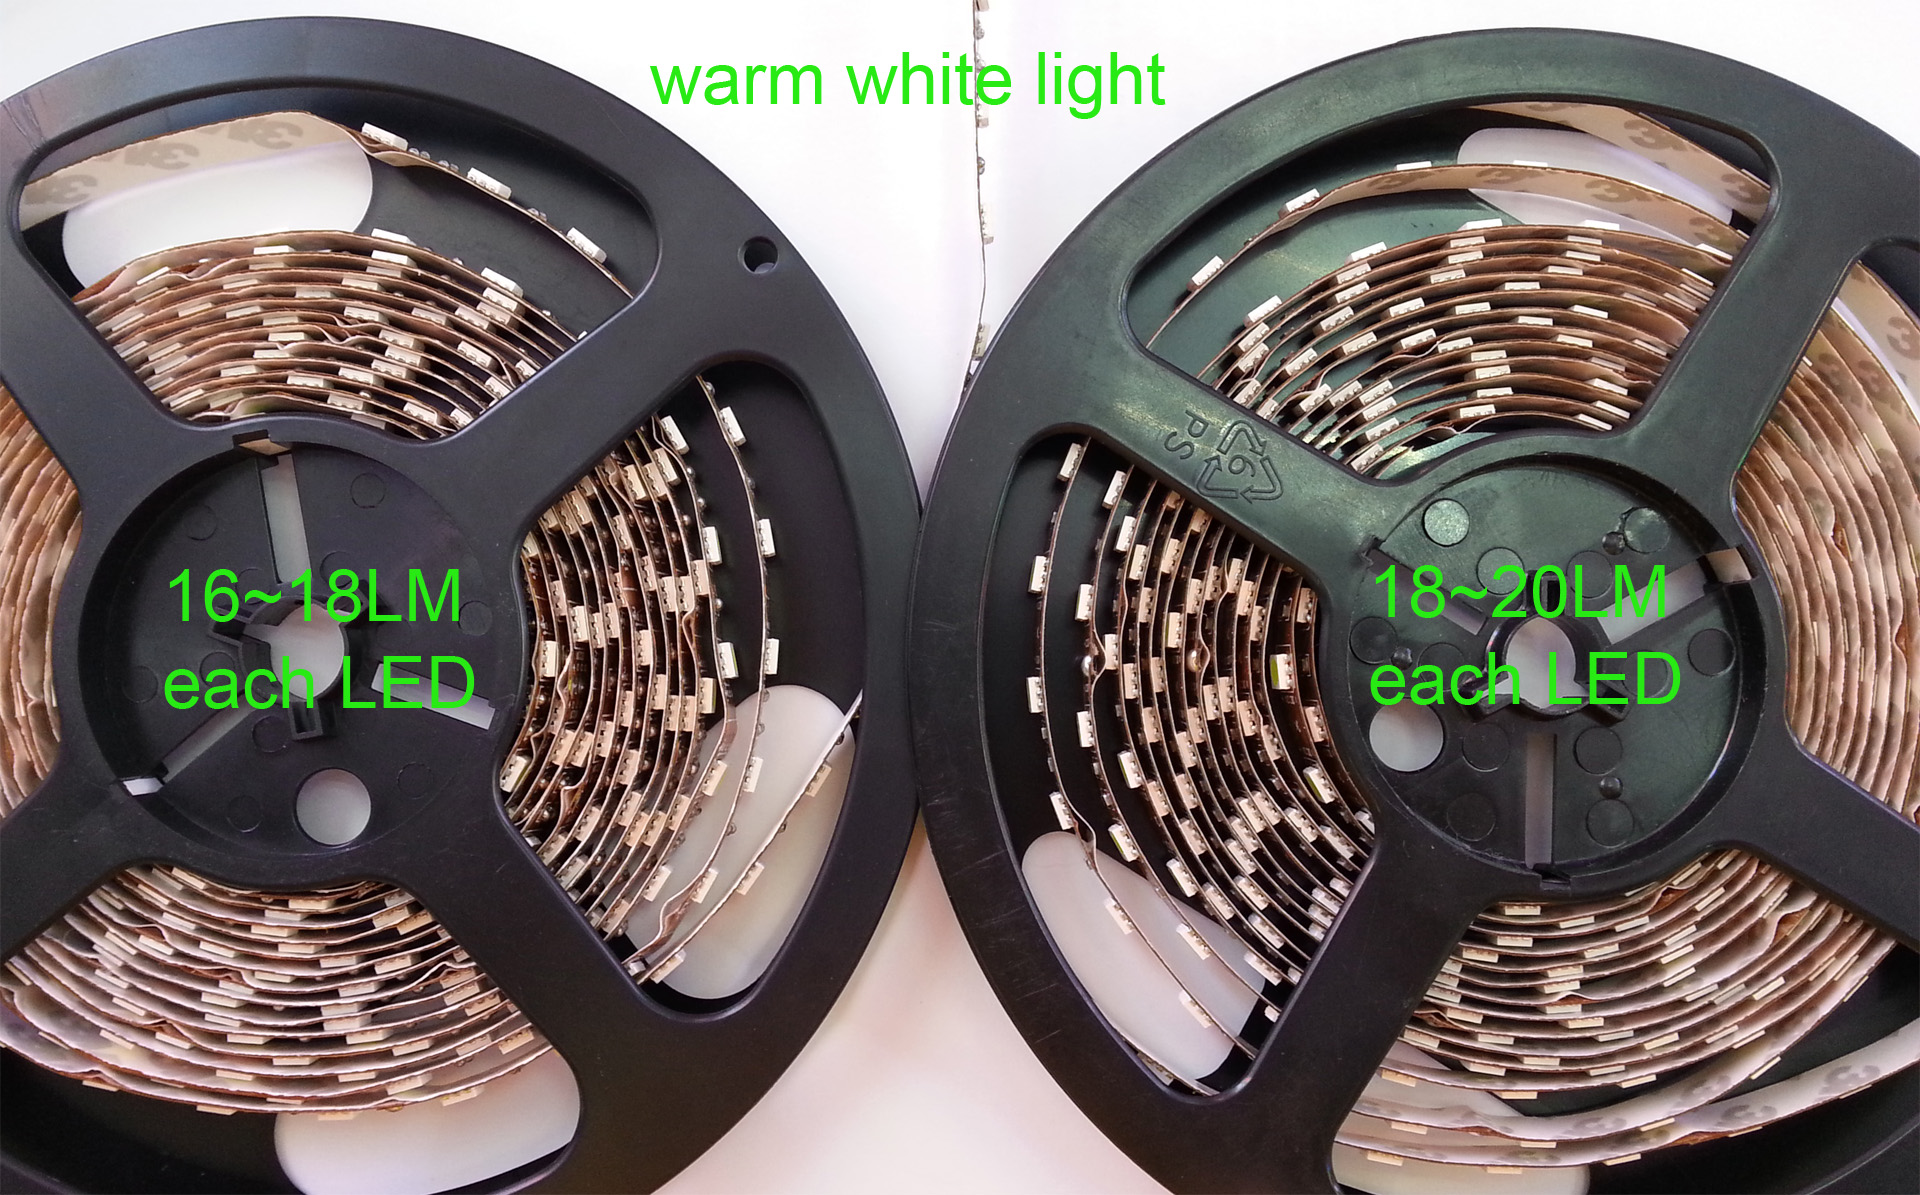 Ultra_Bright_Warm_White_LED_Tape_Strip_Ribbon_Light_brightest_lighting